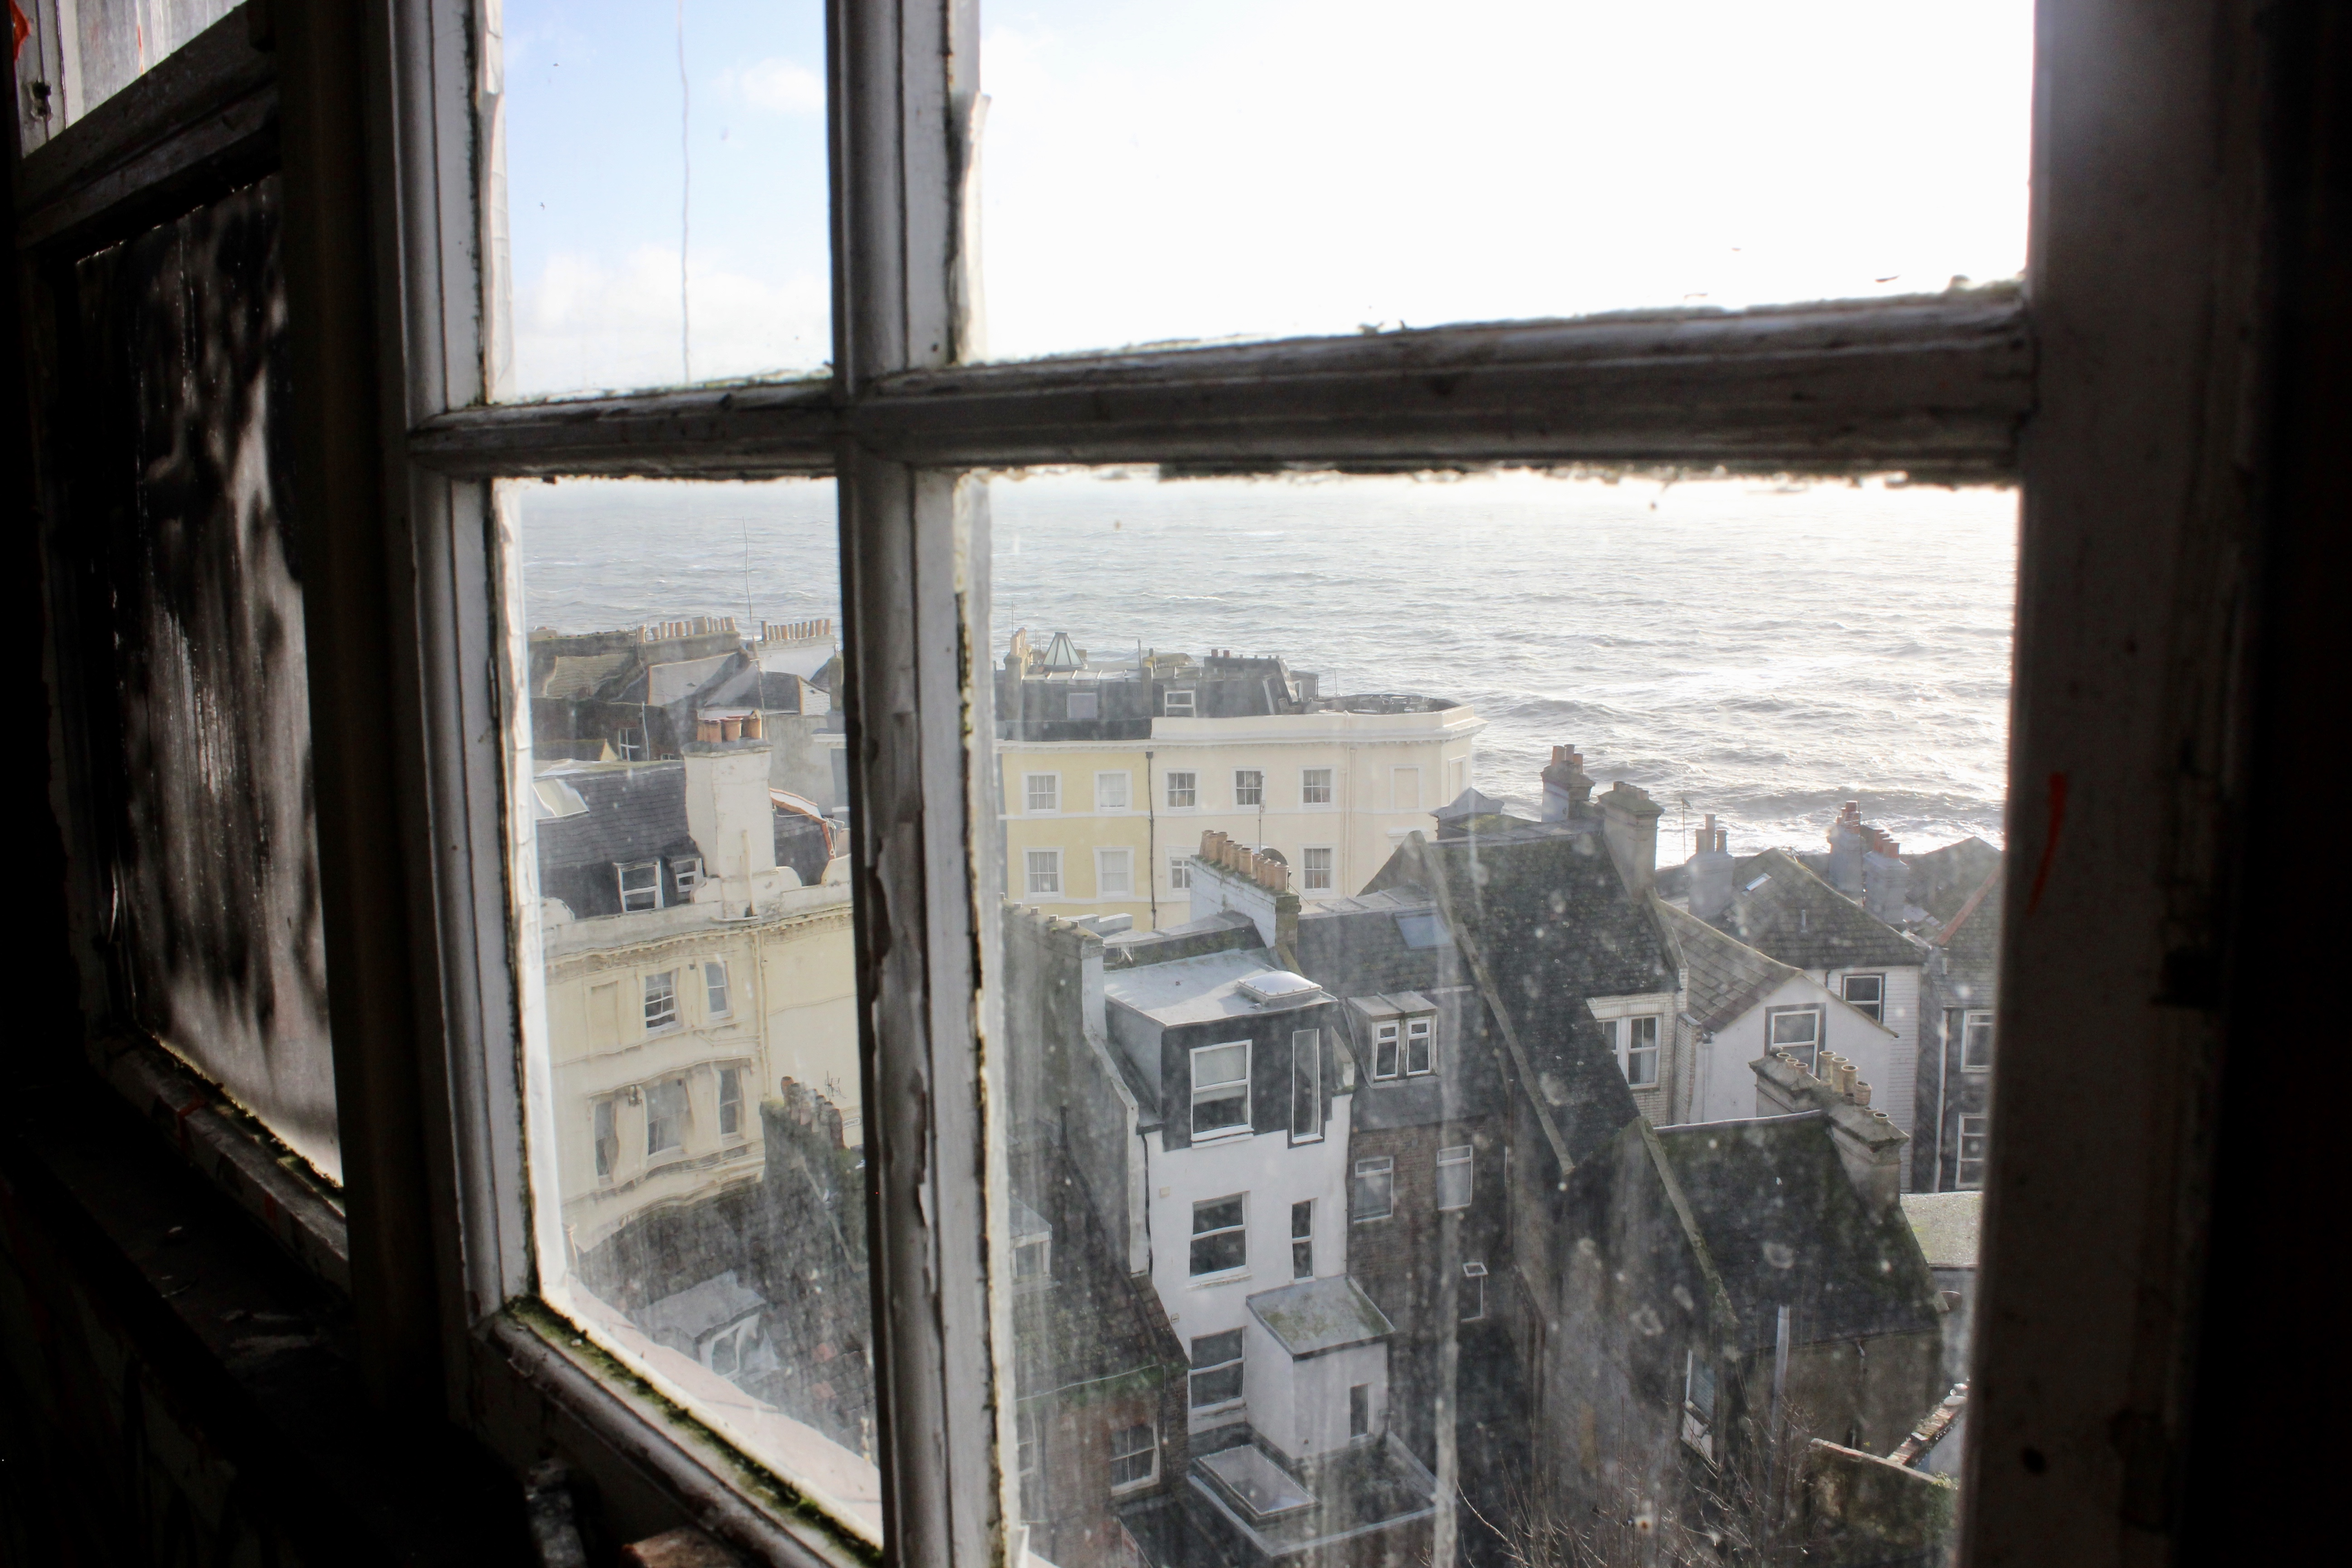 Looking out of a window at Hastings, the sea in the distance